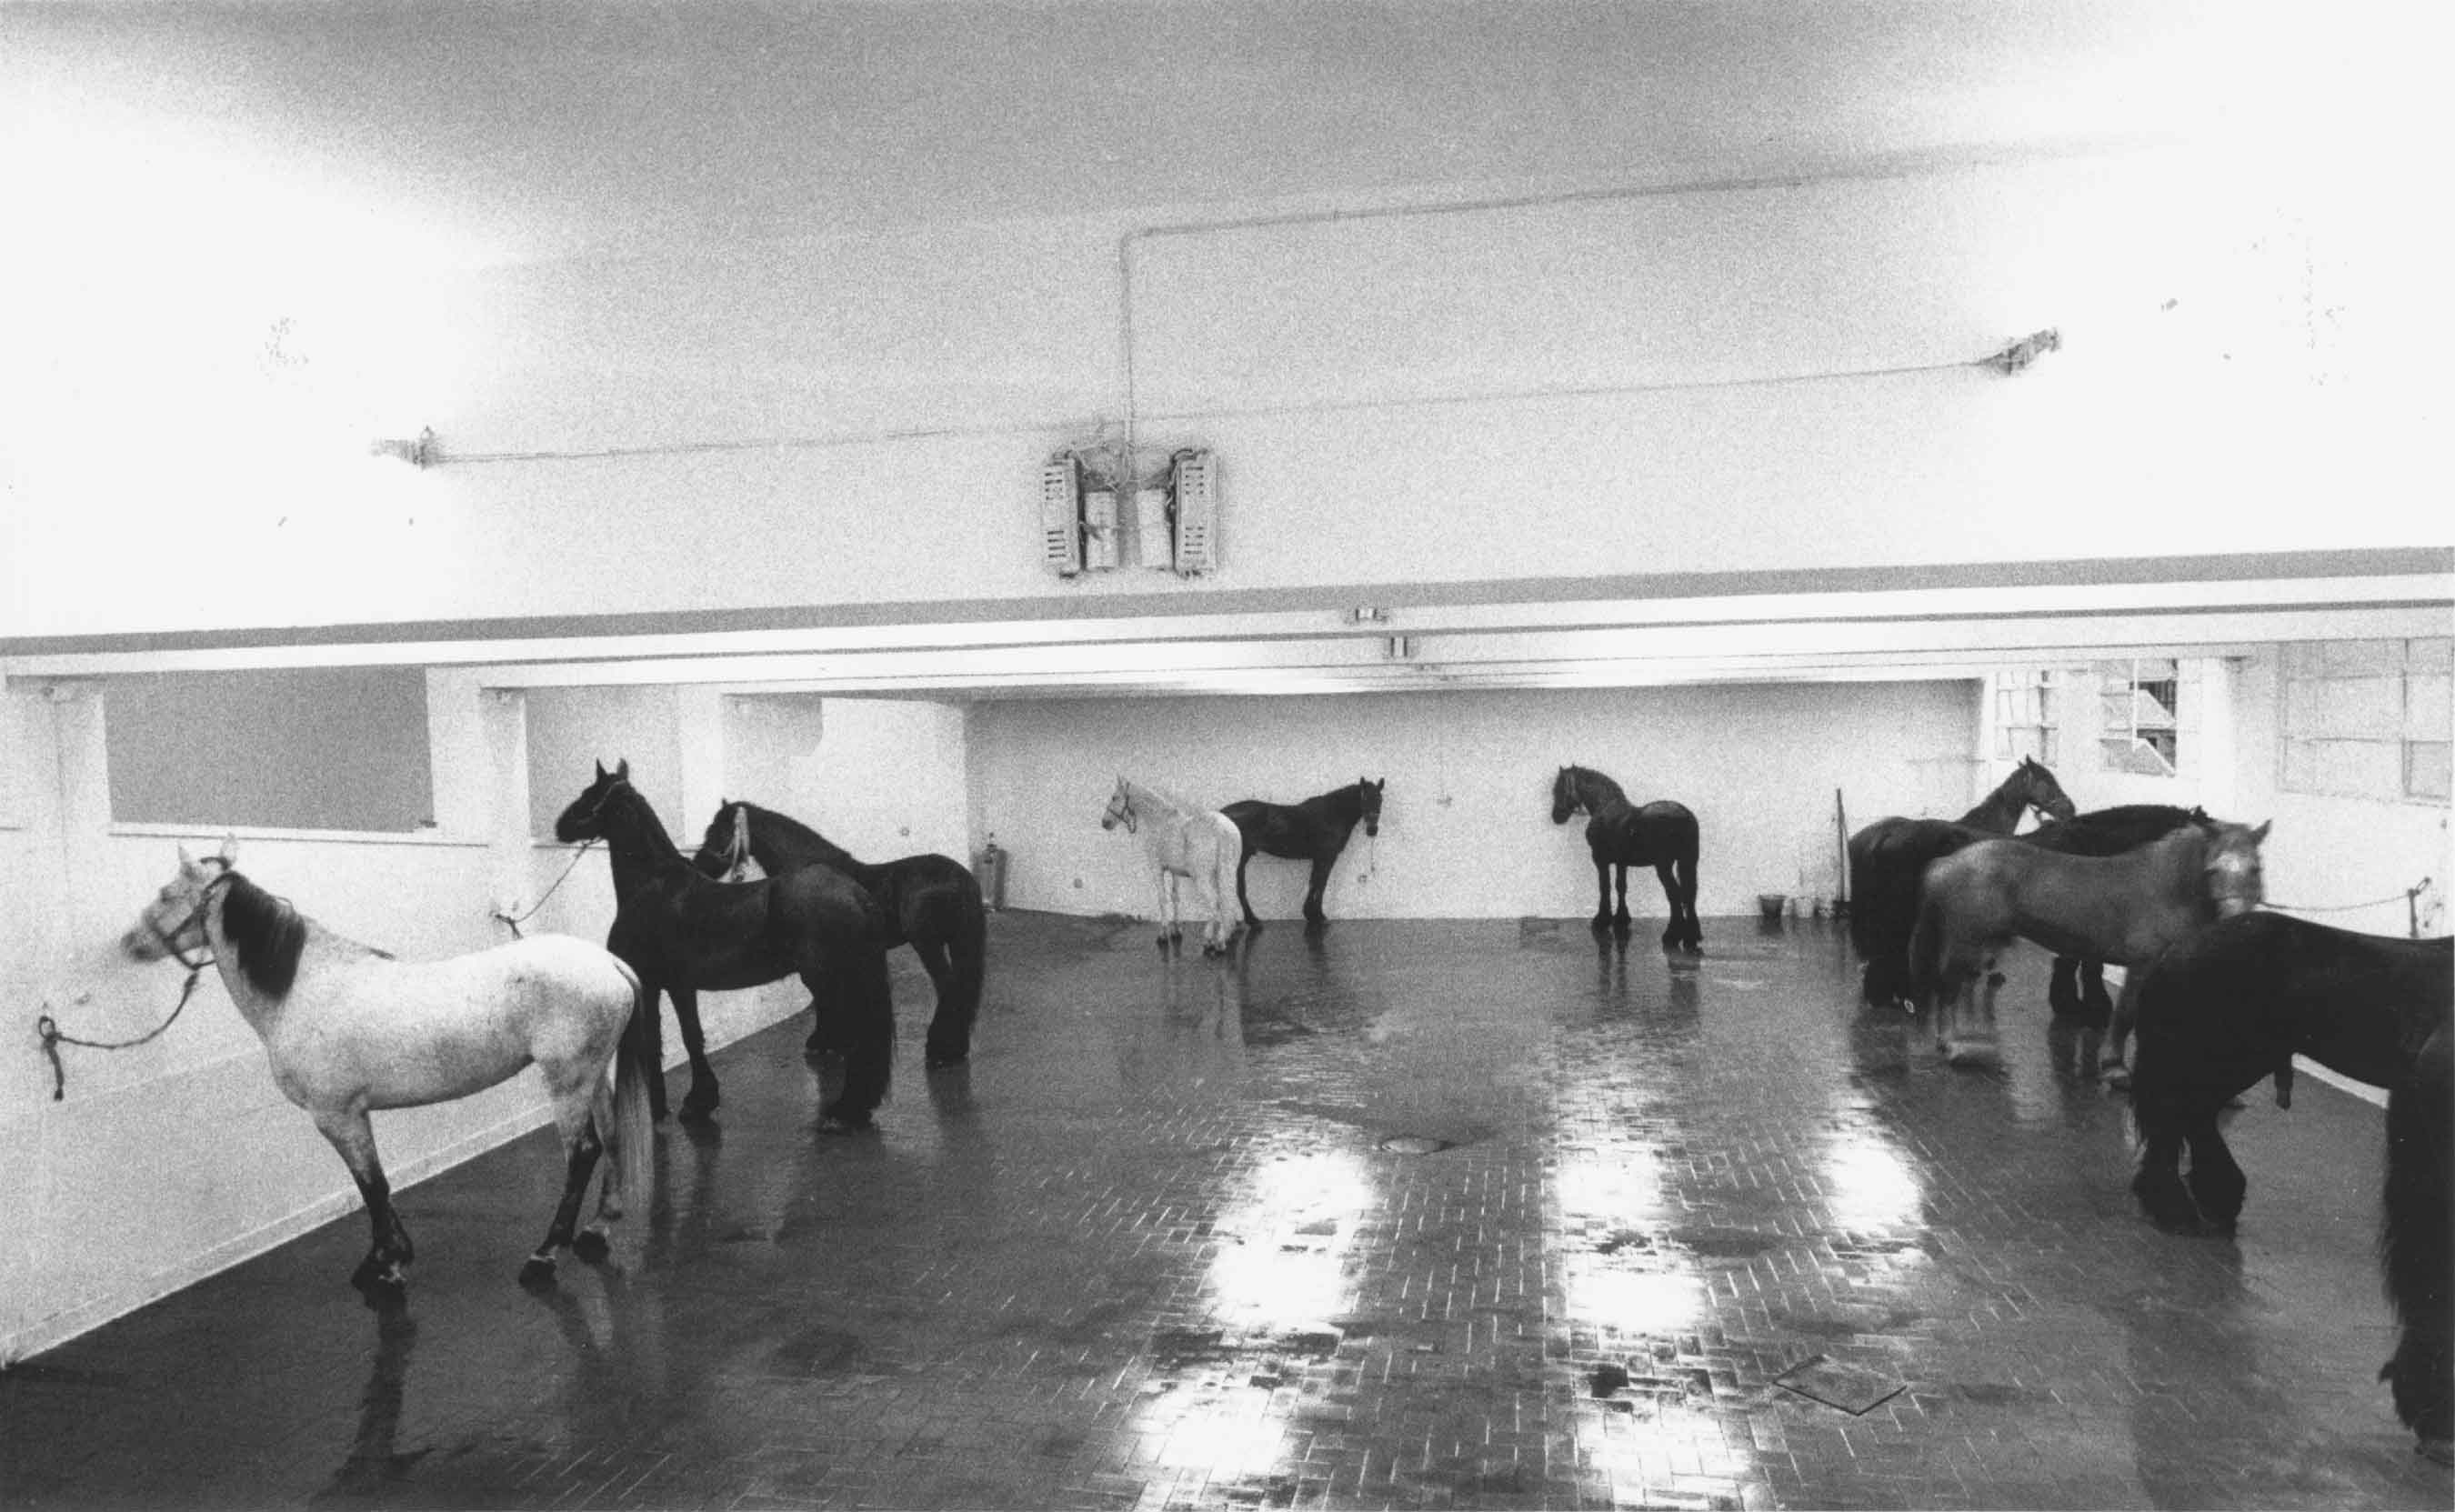 Jannis Kounellis, Untitled, 1969. Galleria L'Attico, Rome. Photo: Claudio Abate.